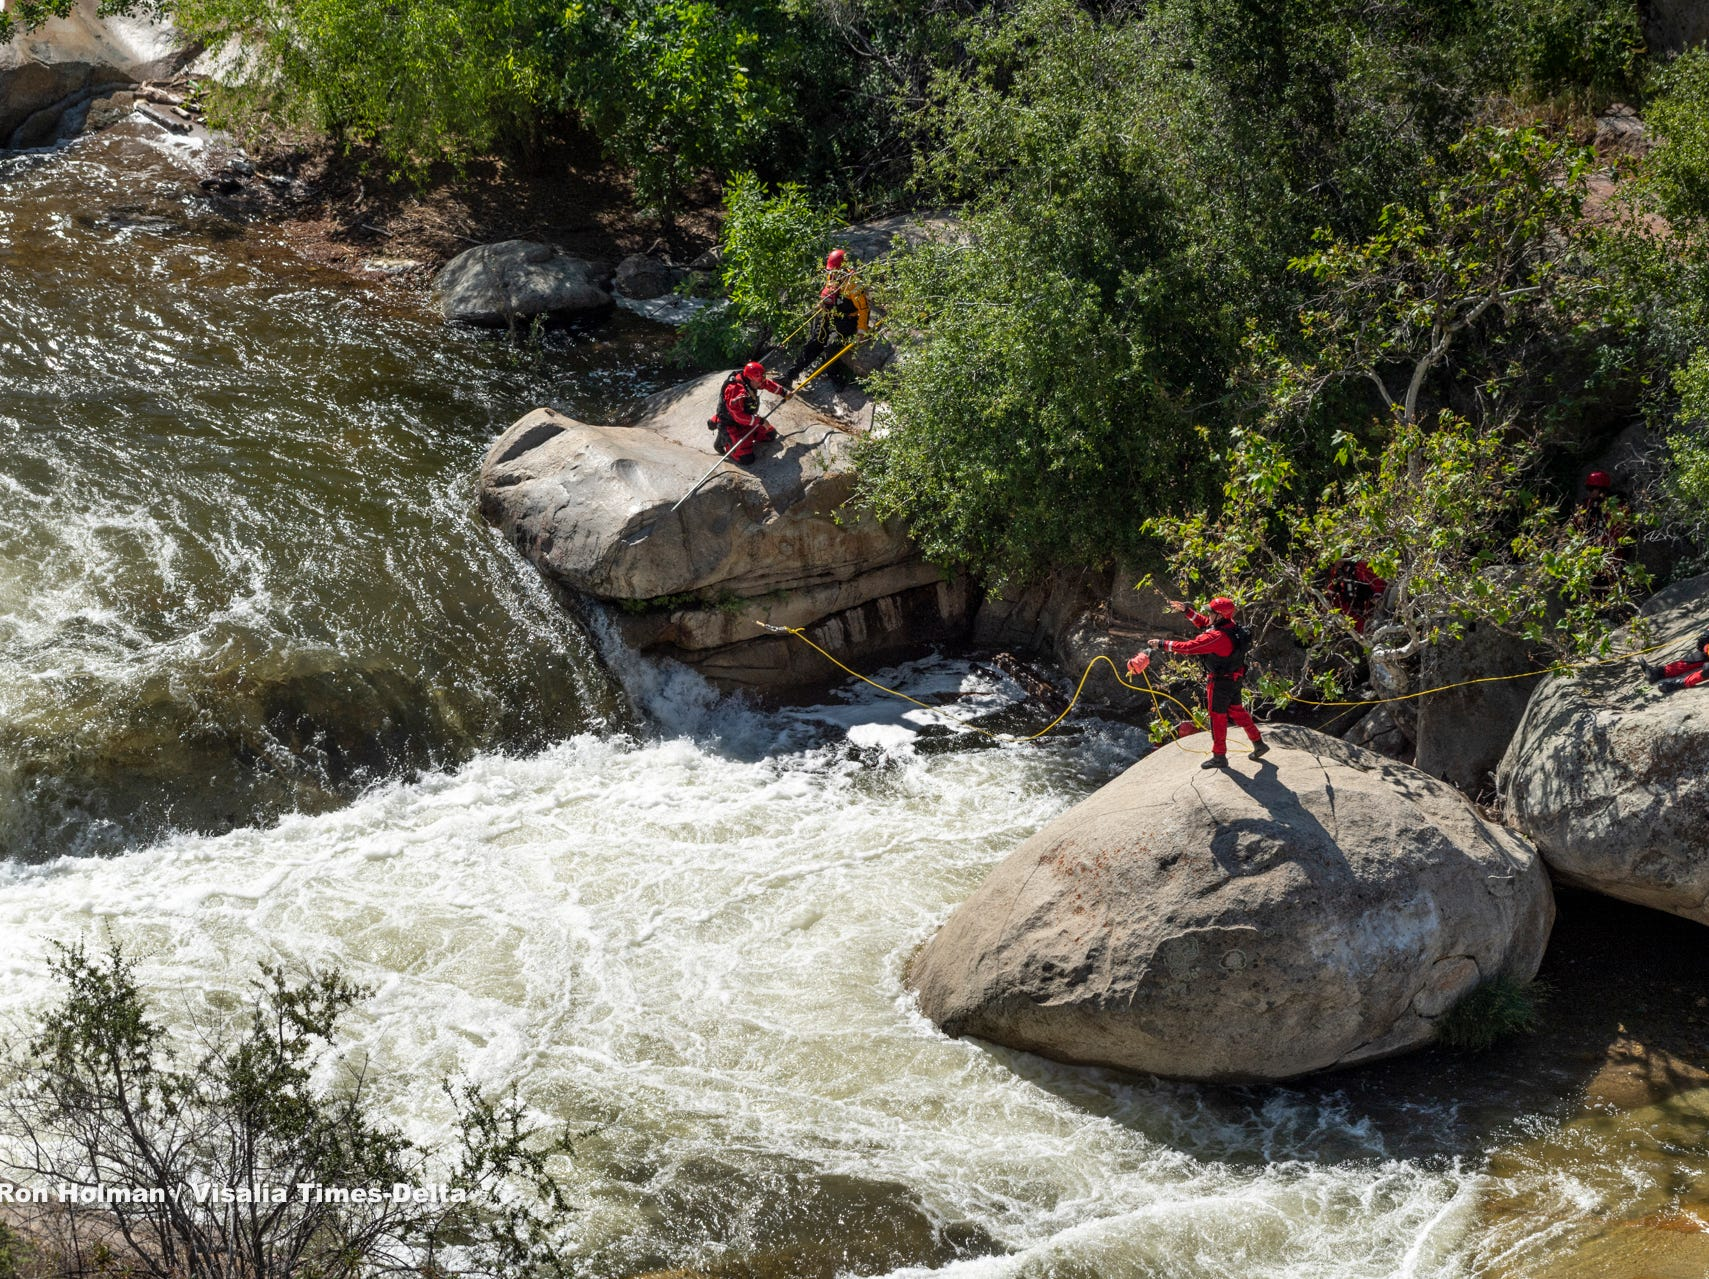 """Tulare County Sheriff Department, Search and Rescue and Tulare County Fire resume the search for 16-year-old boy near the """"Stairs"""" on Tuesday, May 14, 2019. The boy was last seen after he fell into the water at the Stairs about 6 p.m. Sunday."""